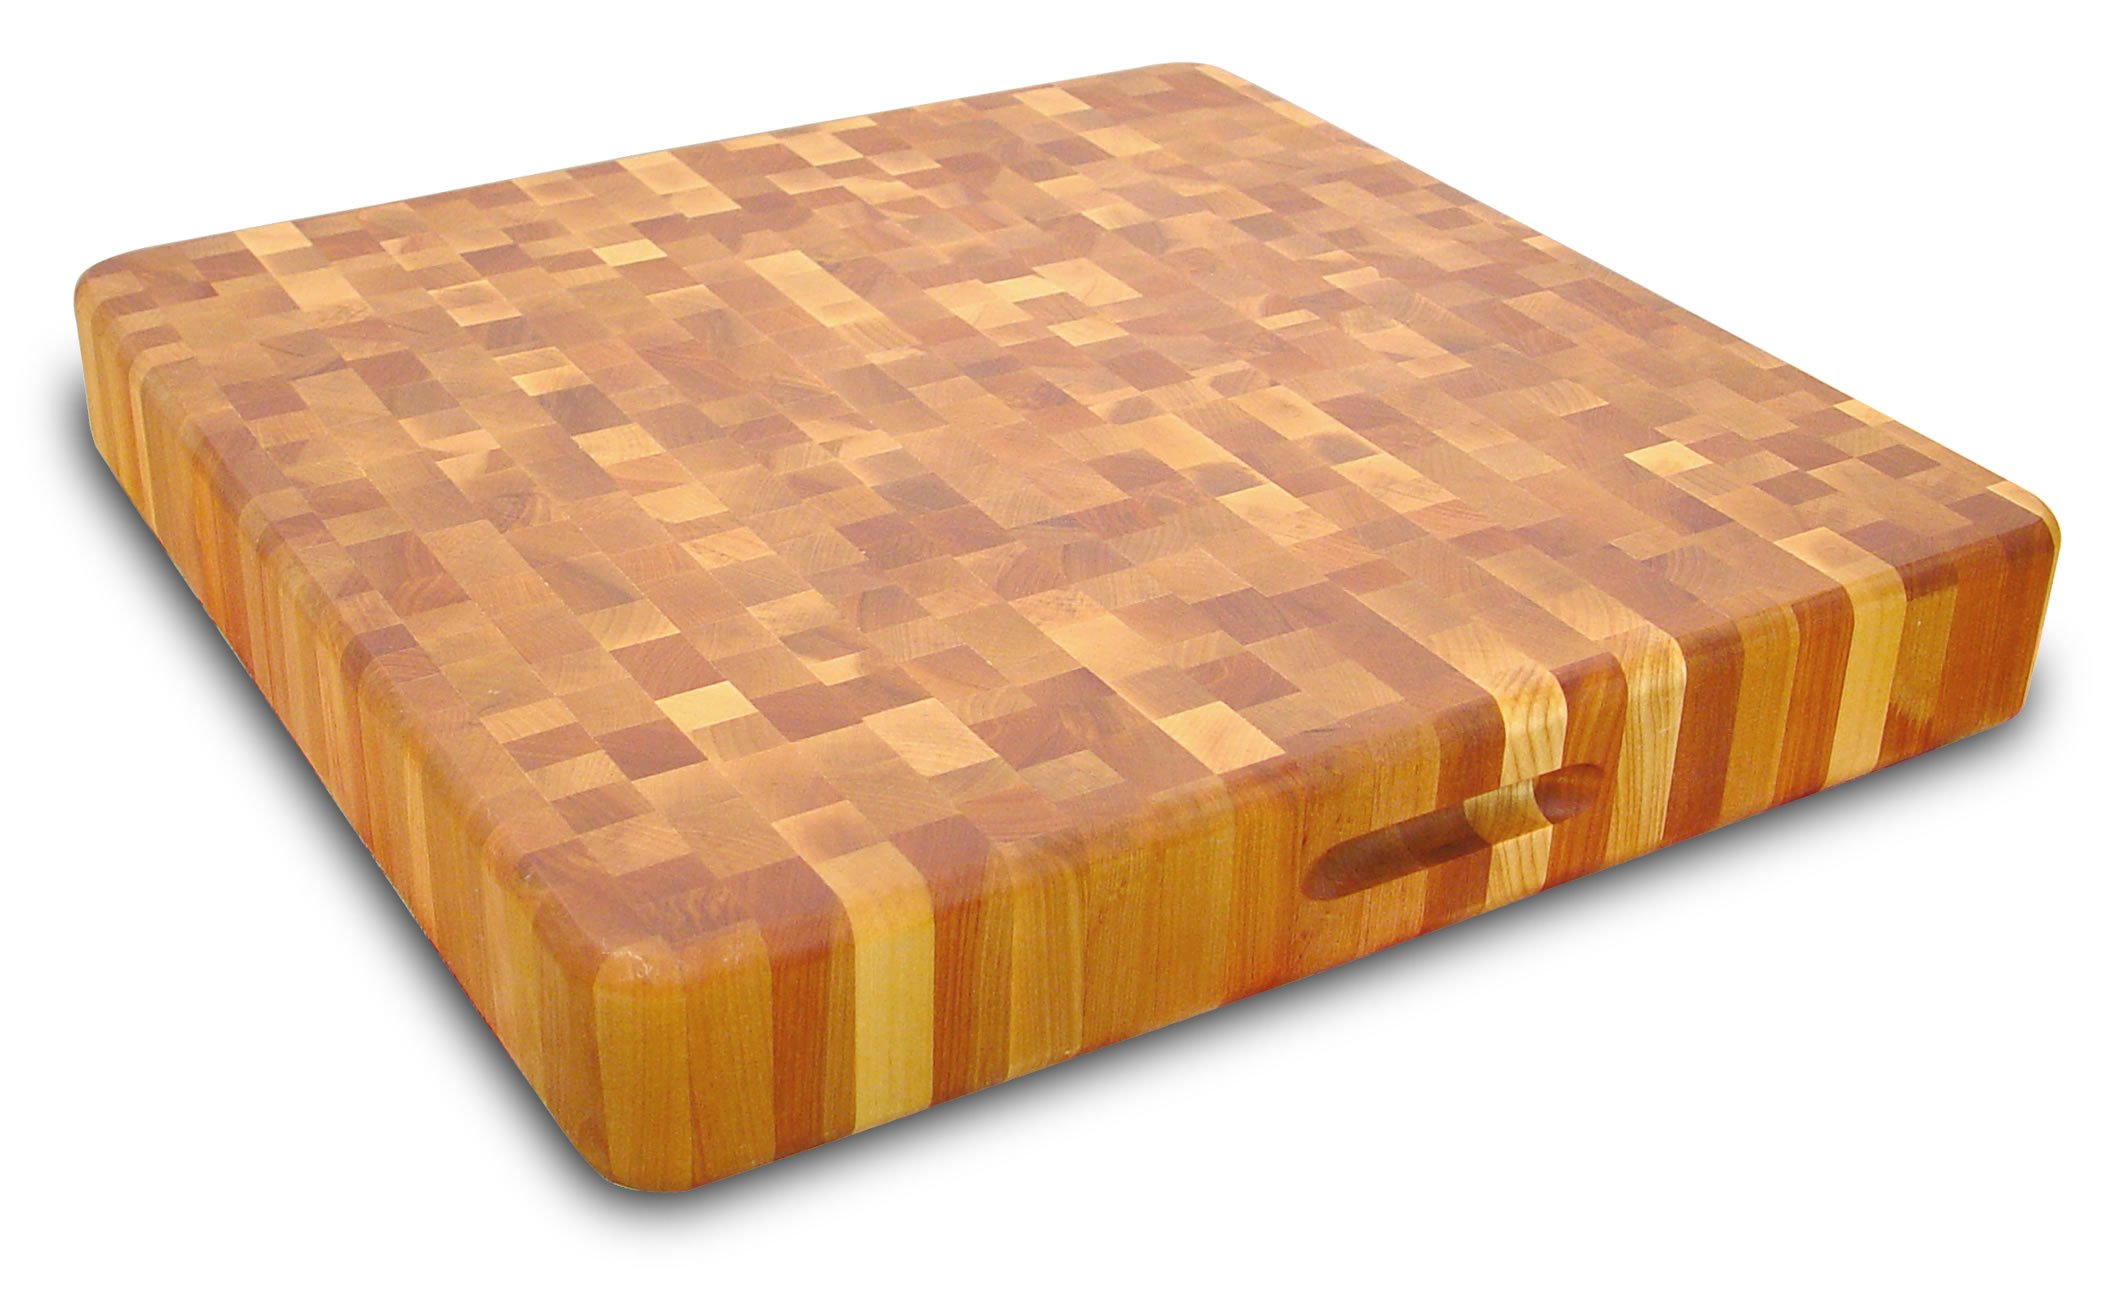 catskill-craftsmen super-slab-finger-grooves-best-wood-cutting-boards-reviews